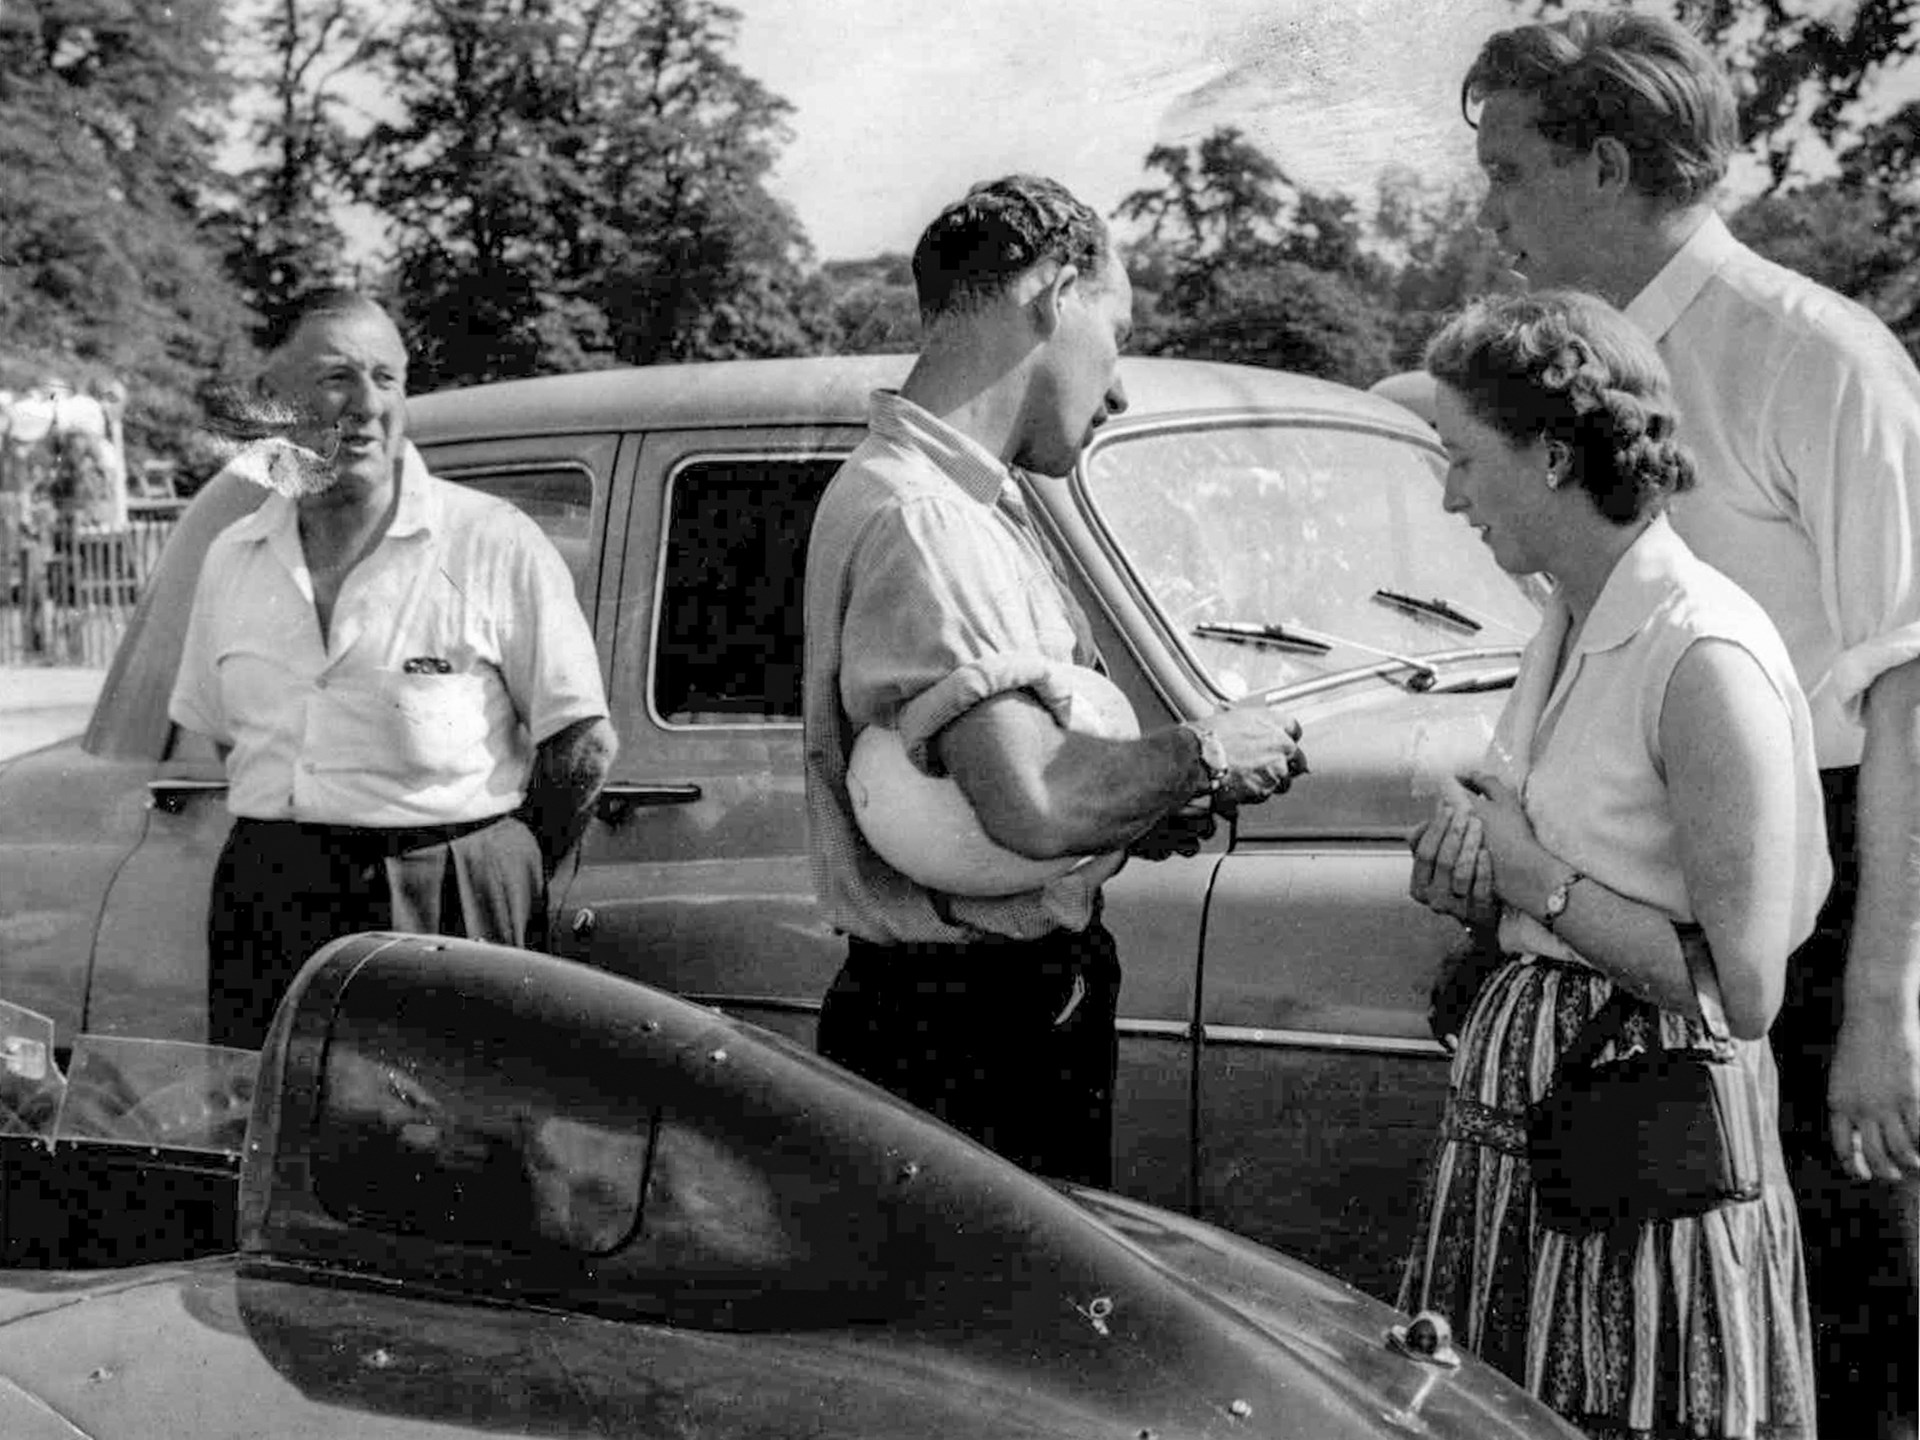 Jack Broadhead, Stirling Moss, and Bob Berry with Mrs. Berry discuss OKV 2 in the foreground.